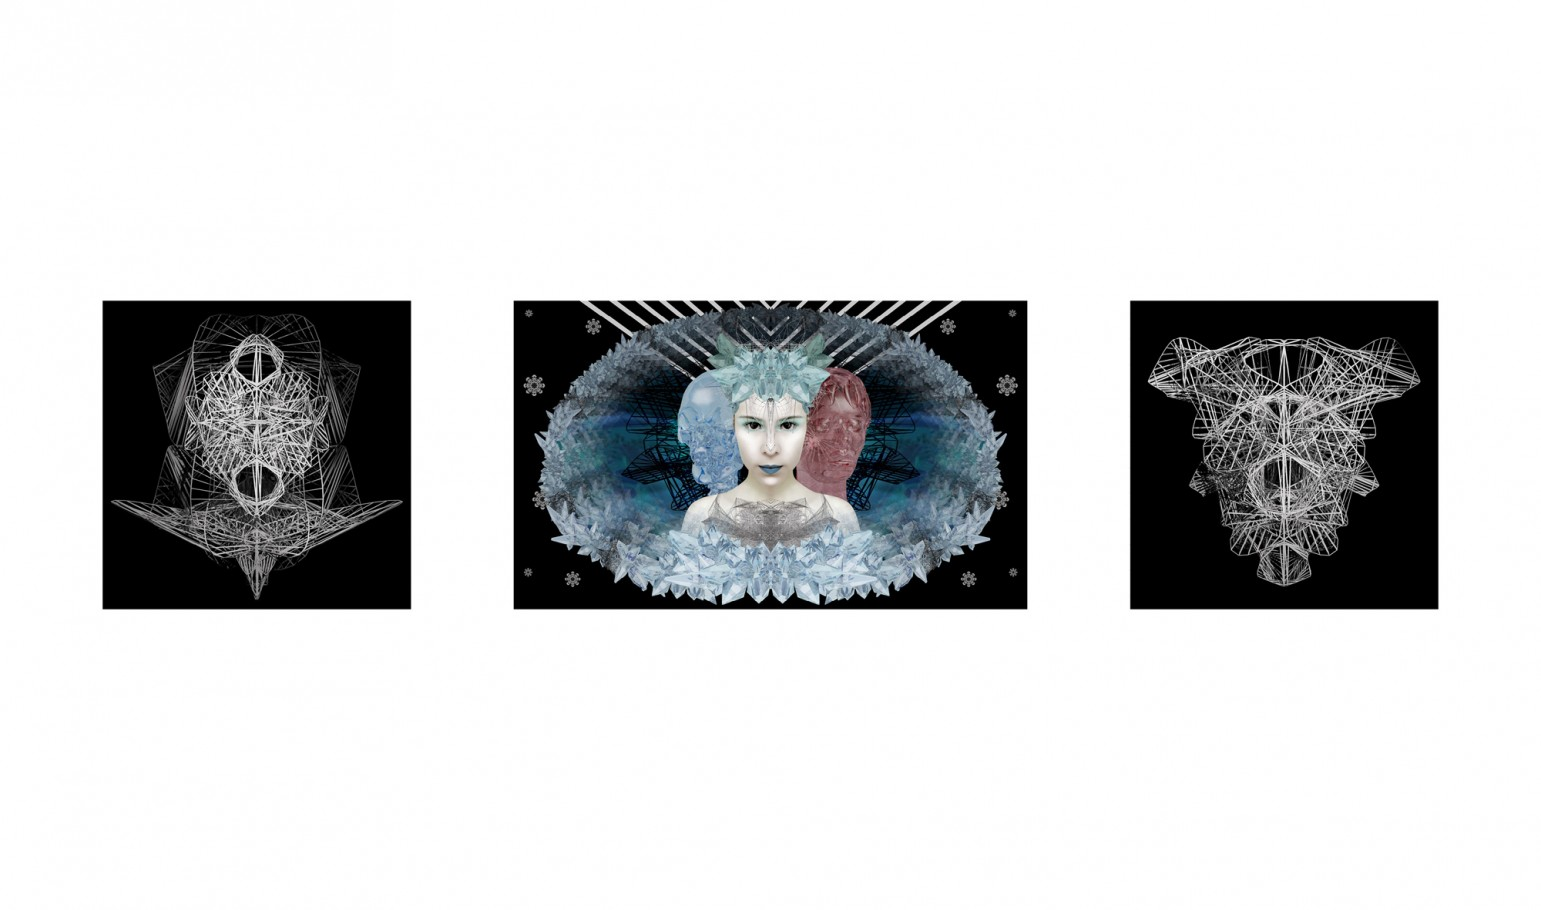 Ice queen 100x60 cm /60x60 cm digital print 3d 2011